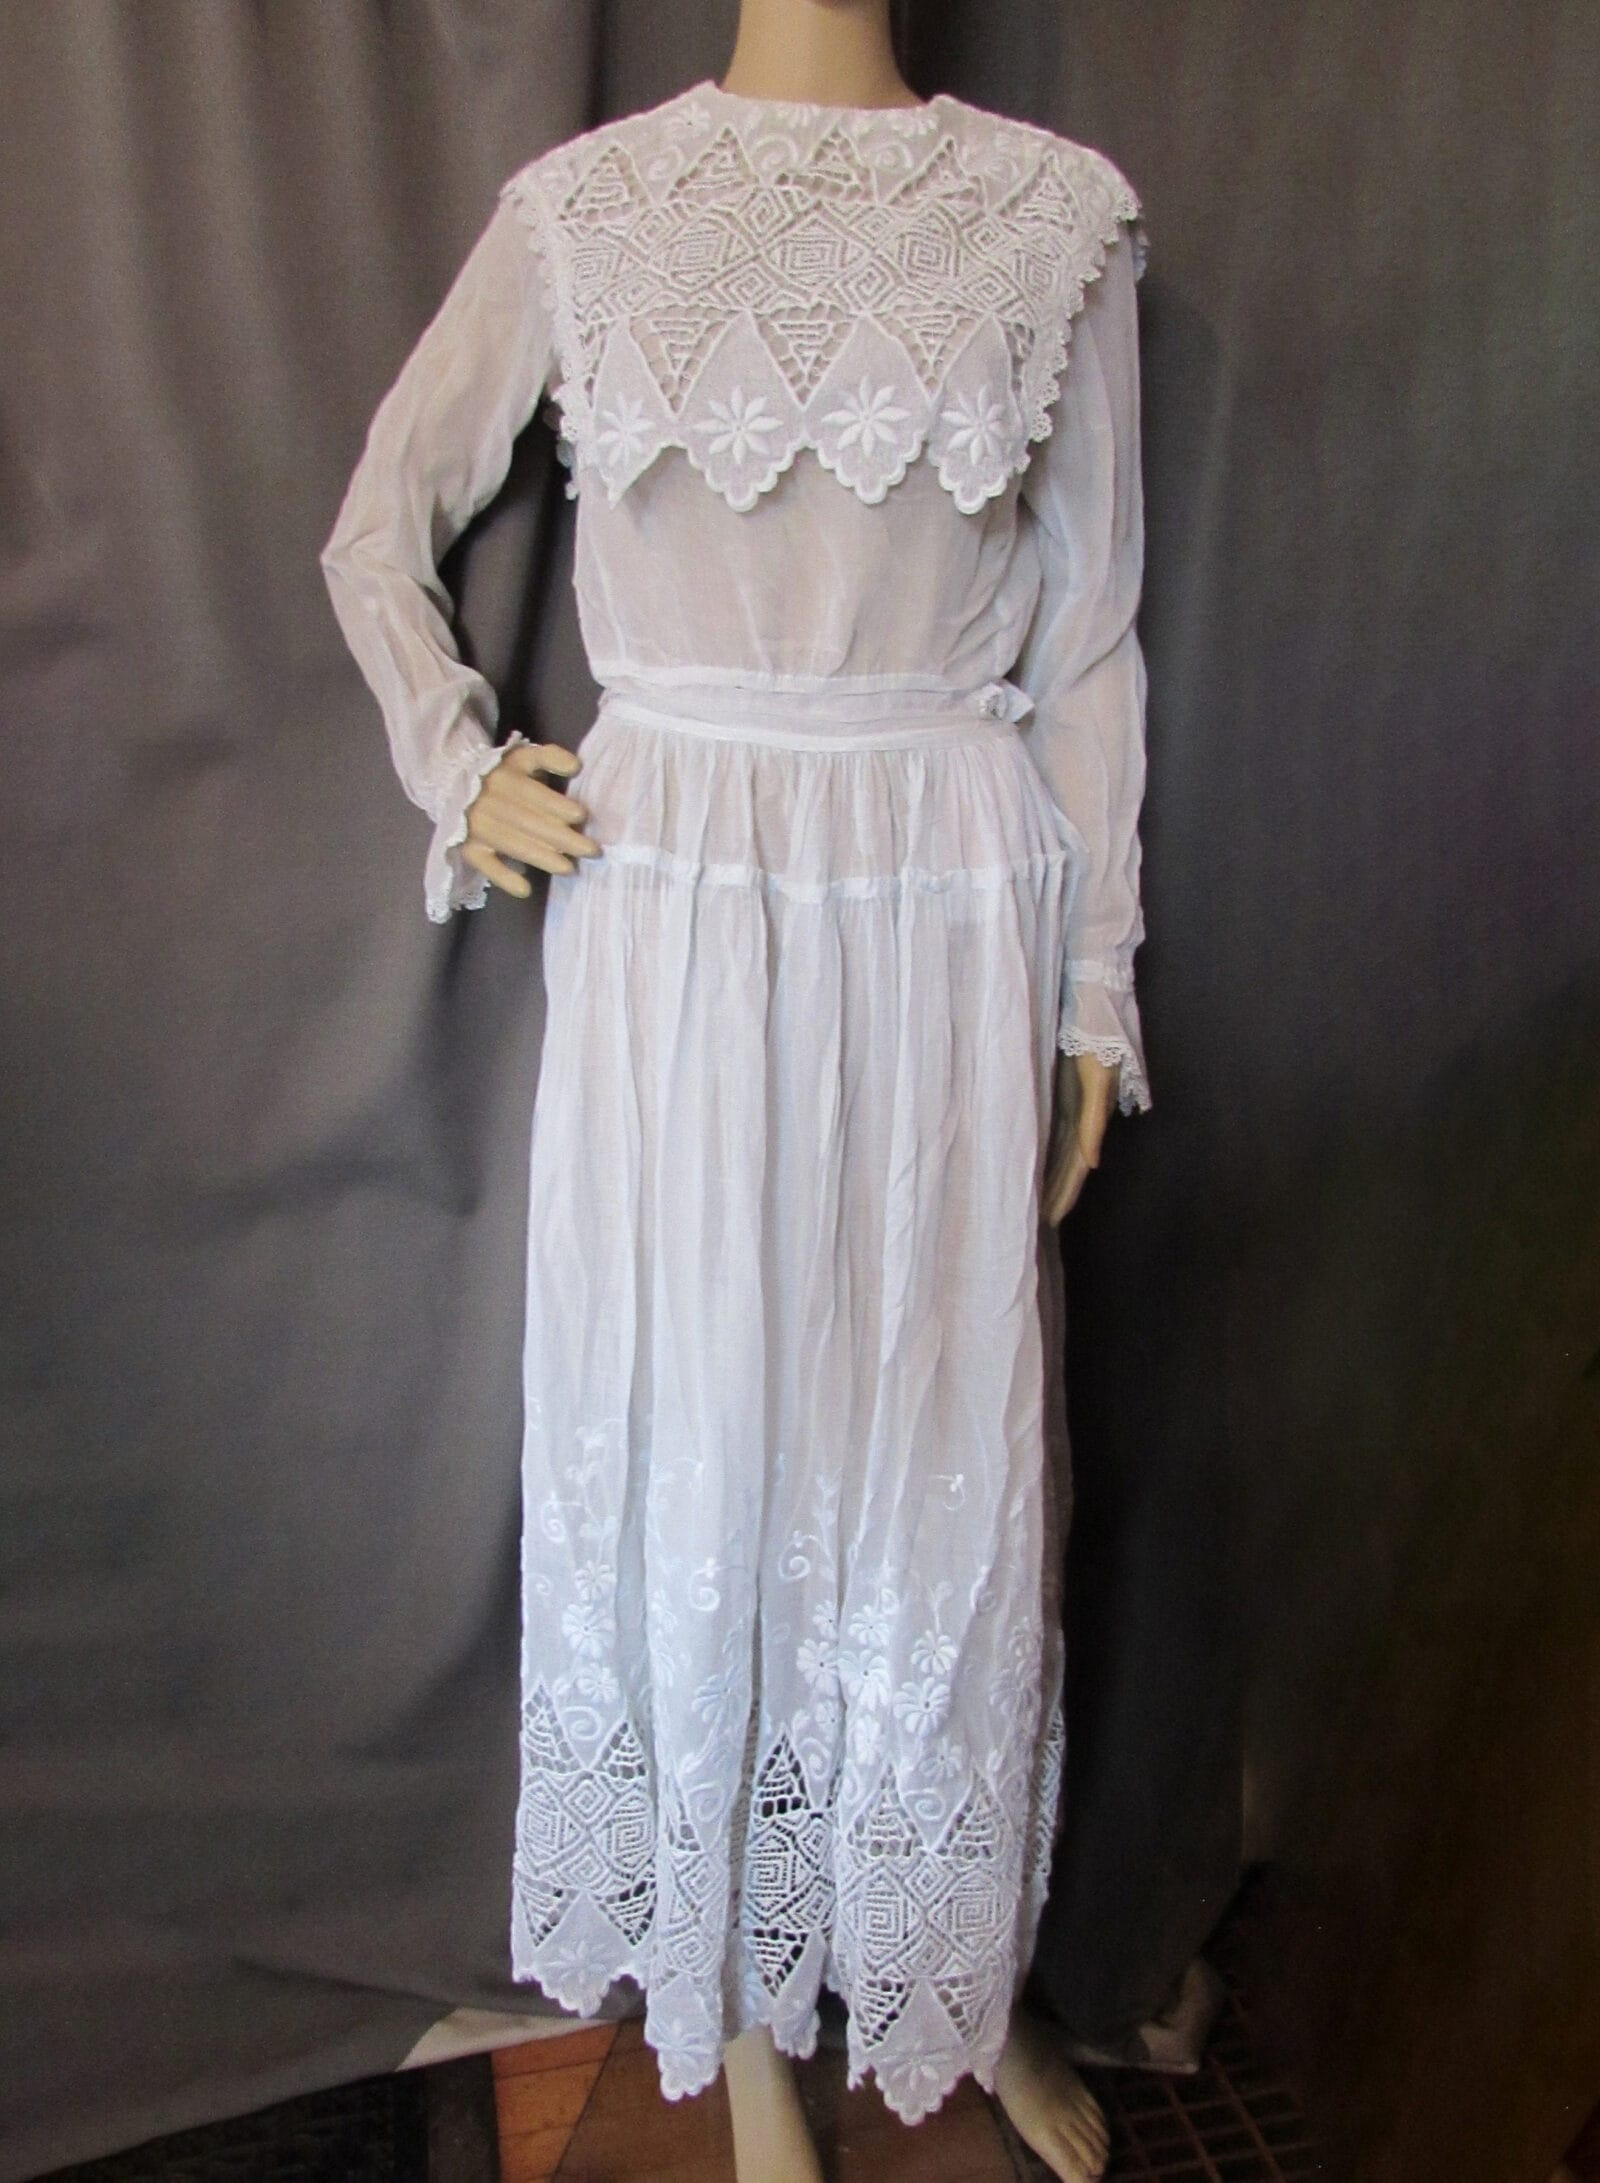 Edwardian Era White Summer Dress Broderie Anglaise Embroidery Whitework Cut Work Embroidery Borders Vintage Fashions Antique Clothing